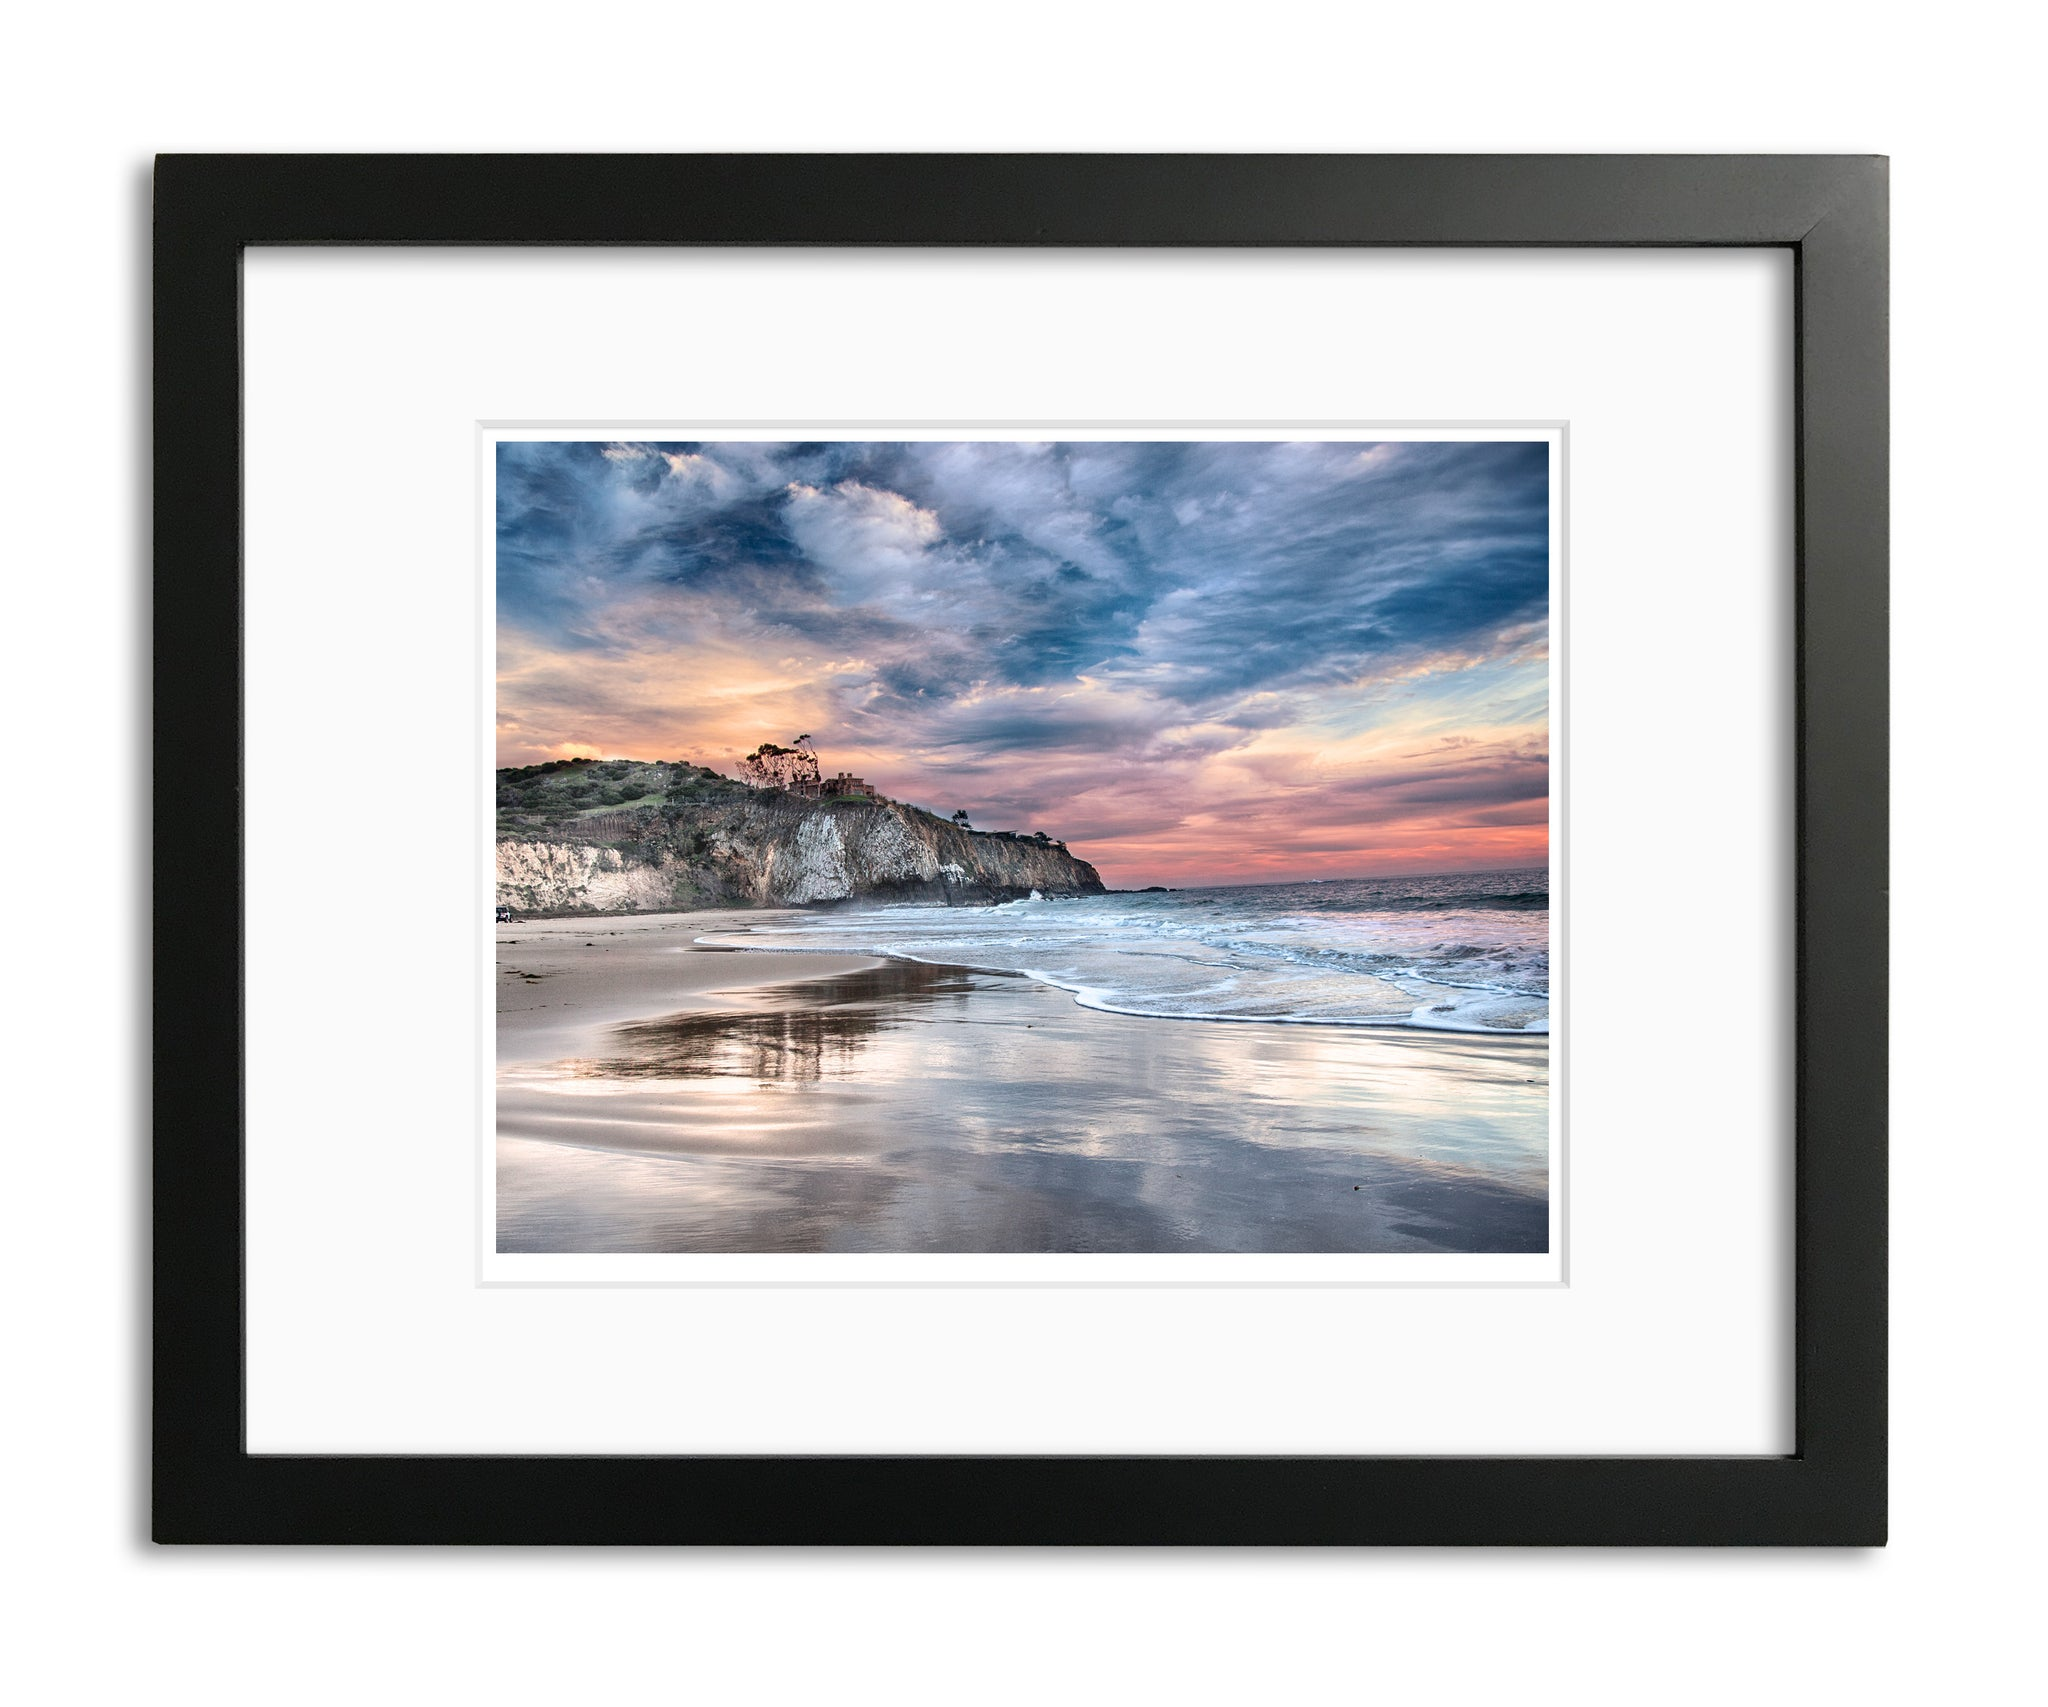 El Moro Bay by Al Gerk, Limited Edition Print